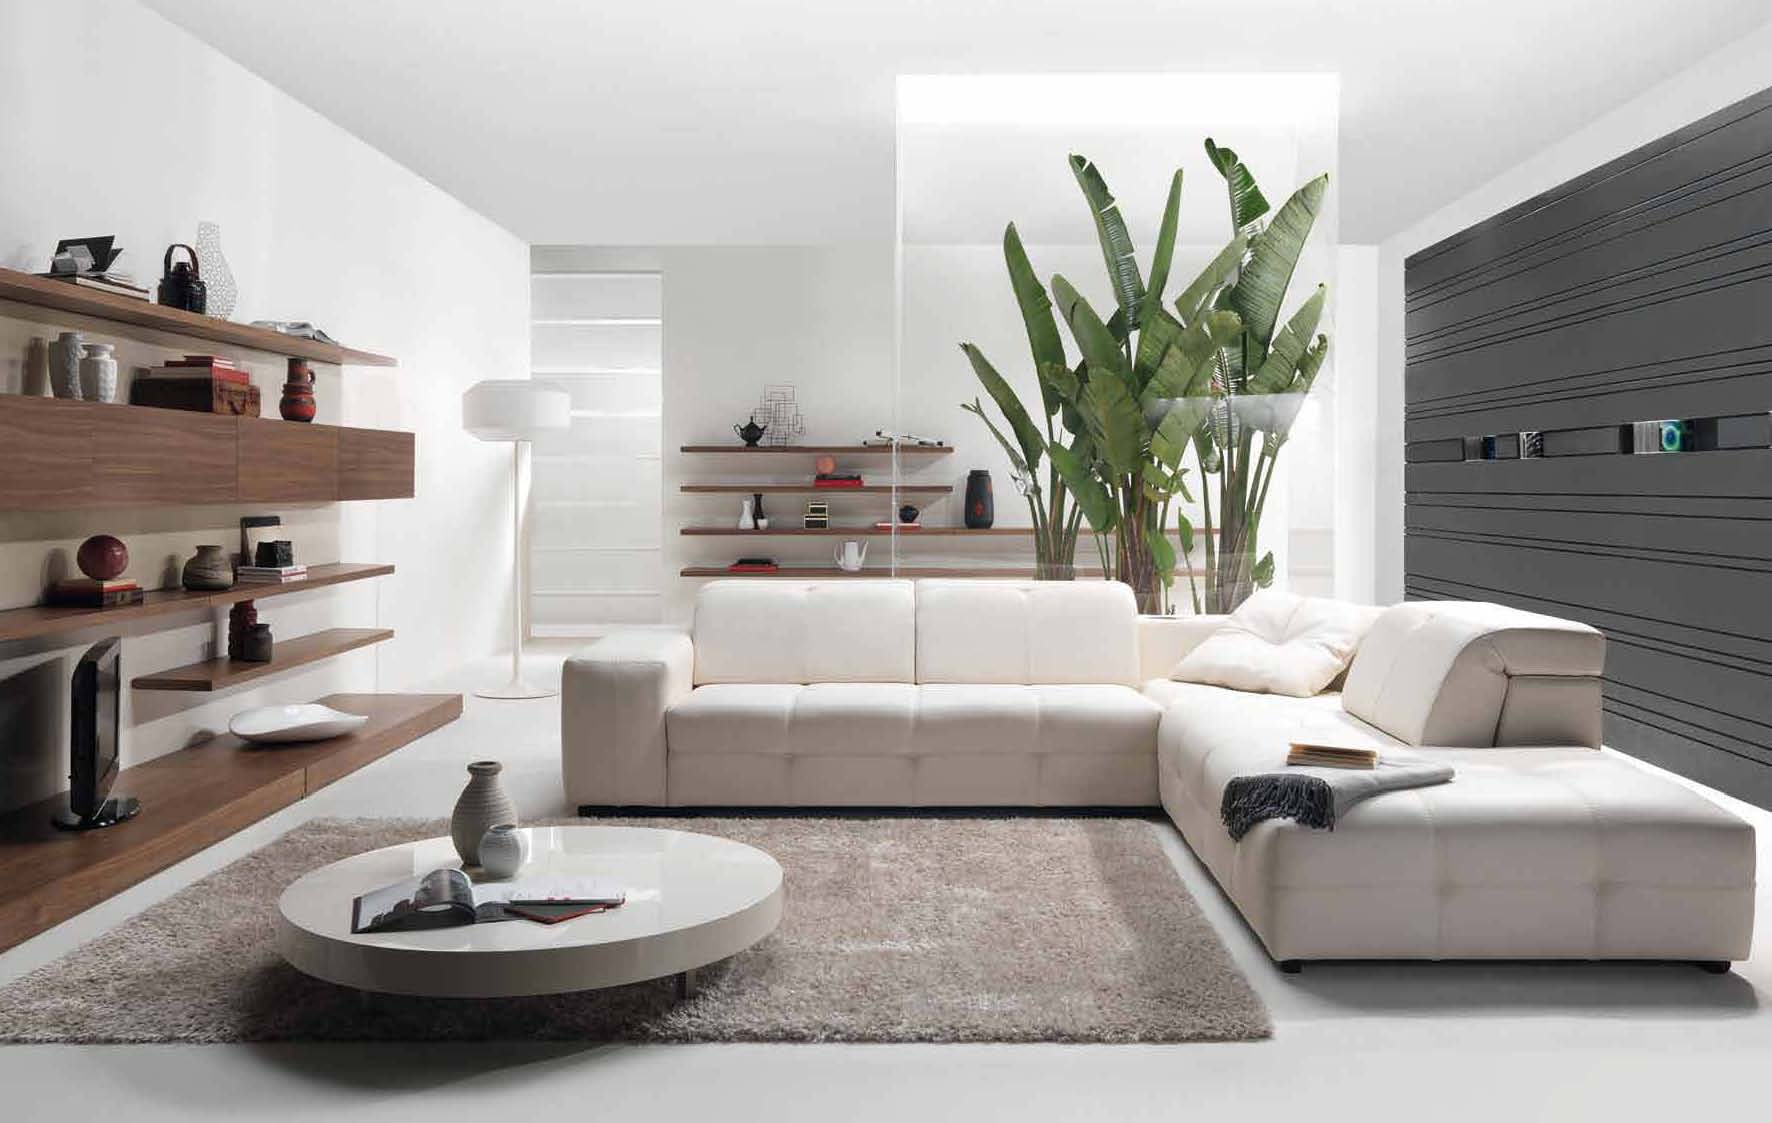 25 Stunning Home Interior Designs Ideas - The WoW Style on Interior Modern House  id=89814